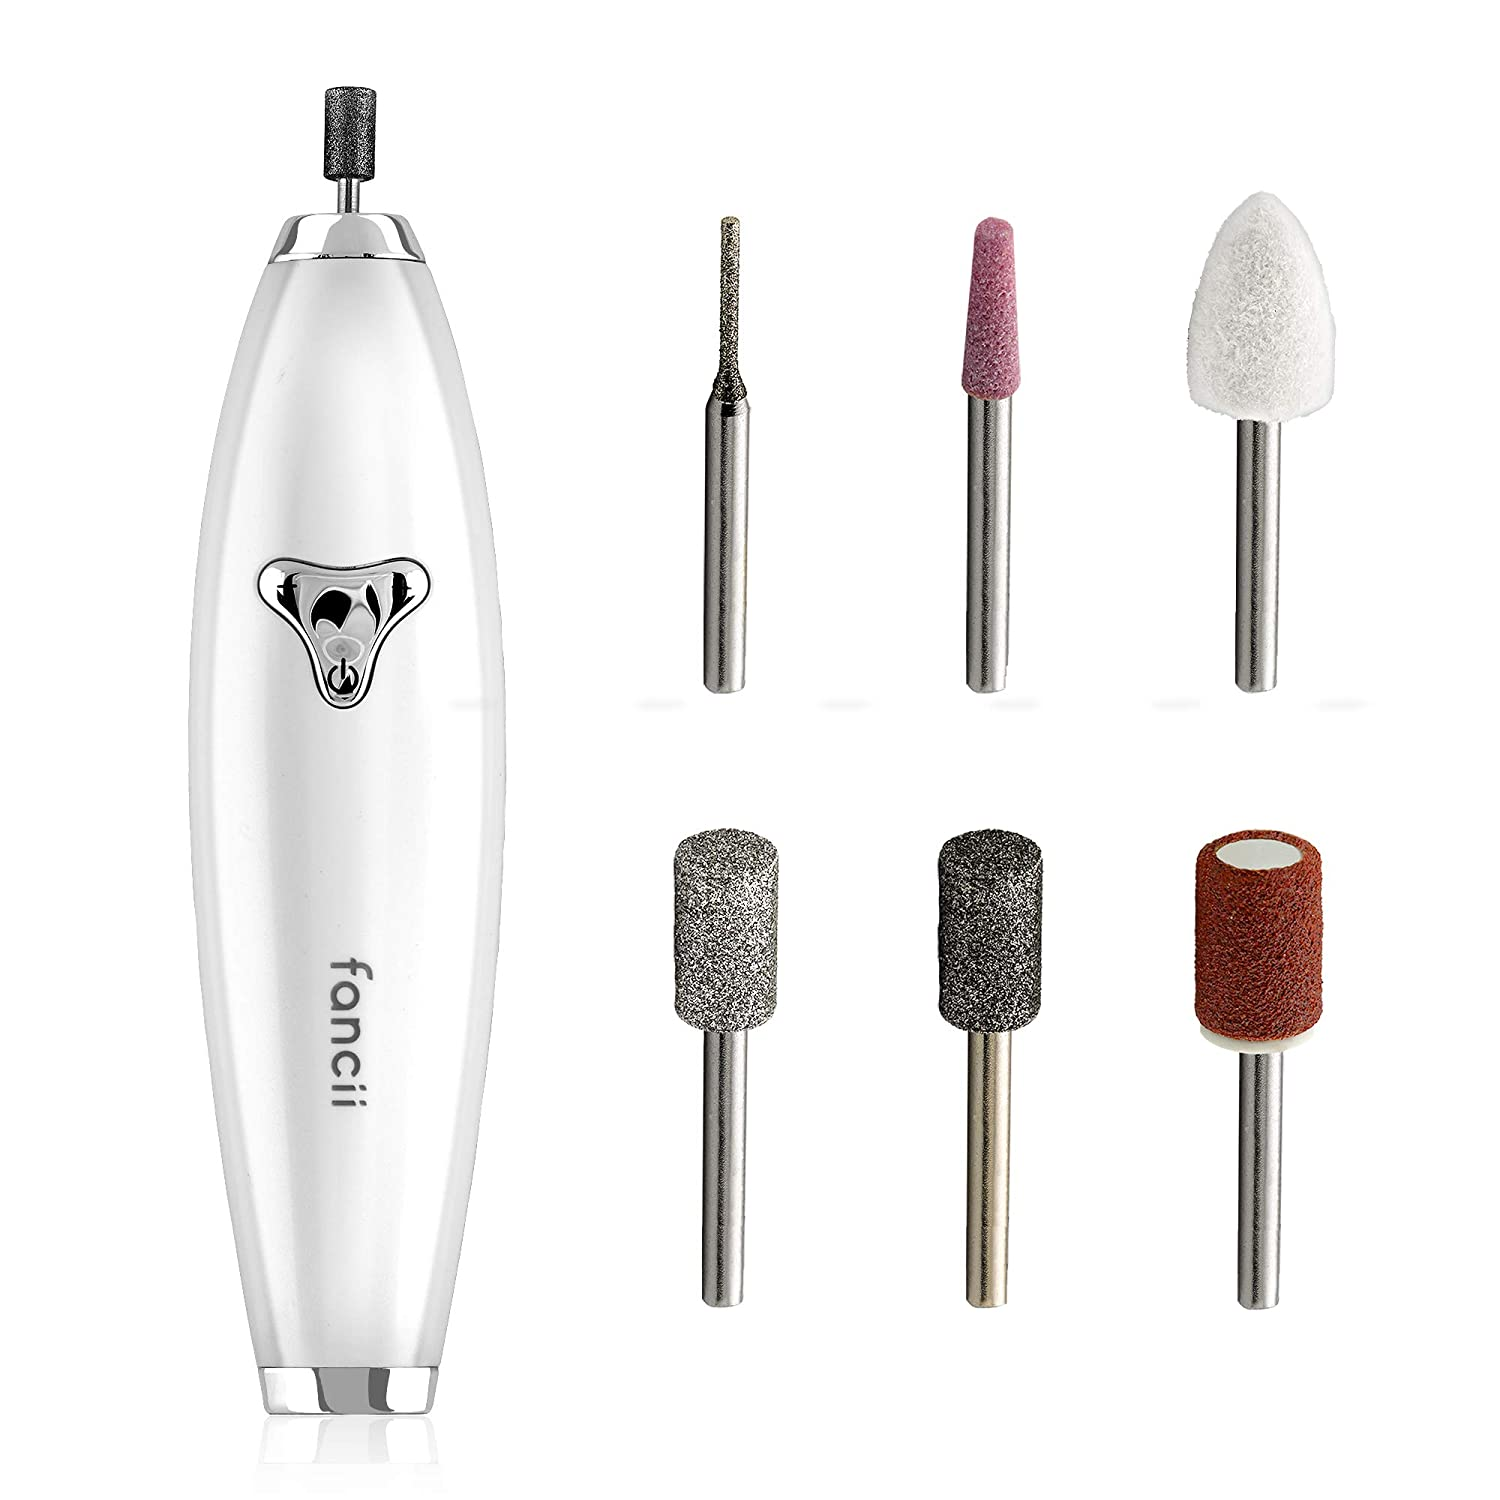 Fancii Professional Manicure & Pedicure Nail Drill System with Magnetic Case, Rechargeable - Cordless At-Home Nail File Kit with 8 Speed Settings, Buffer, Grinder, Shiner and Shaper (Lola)